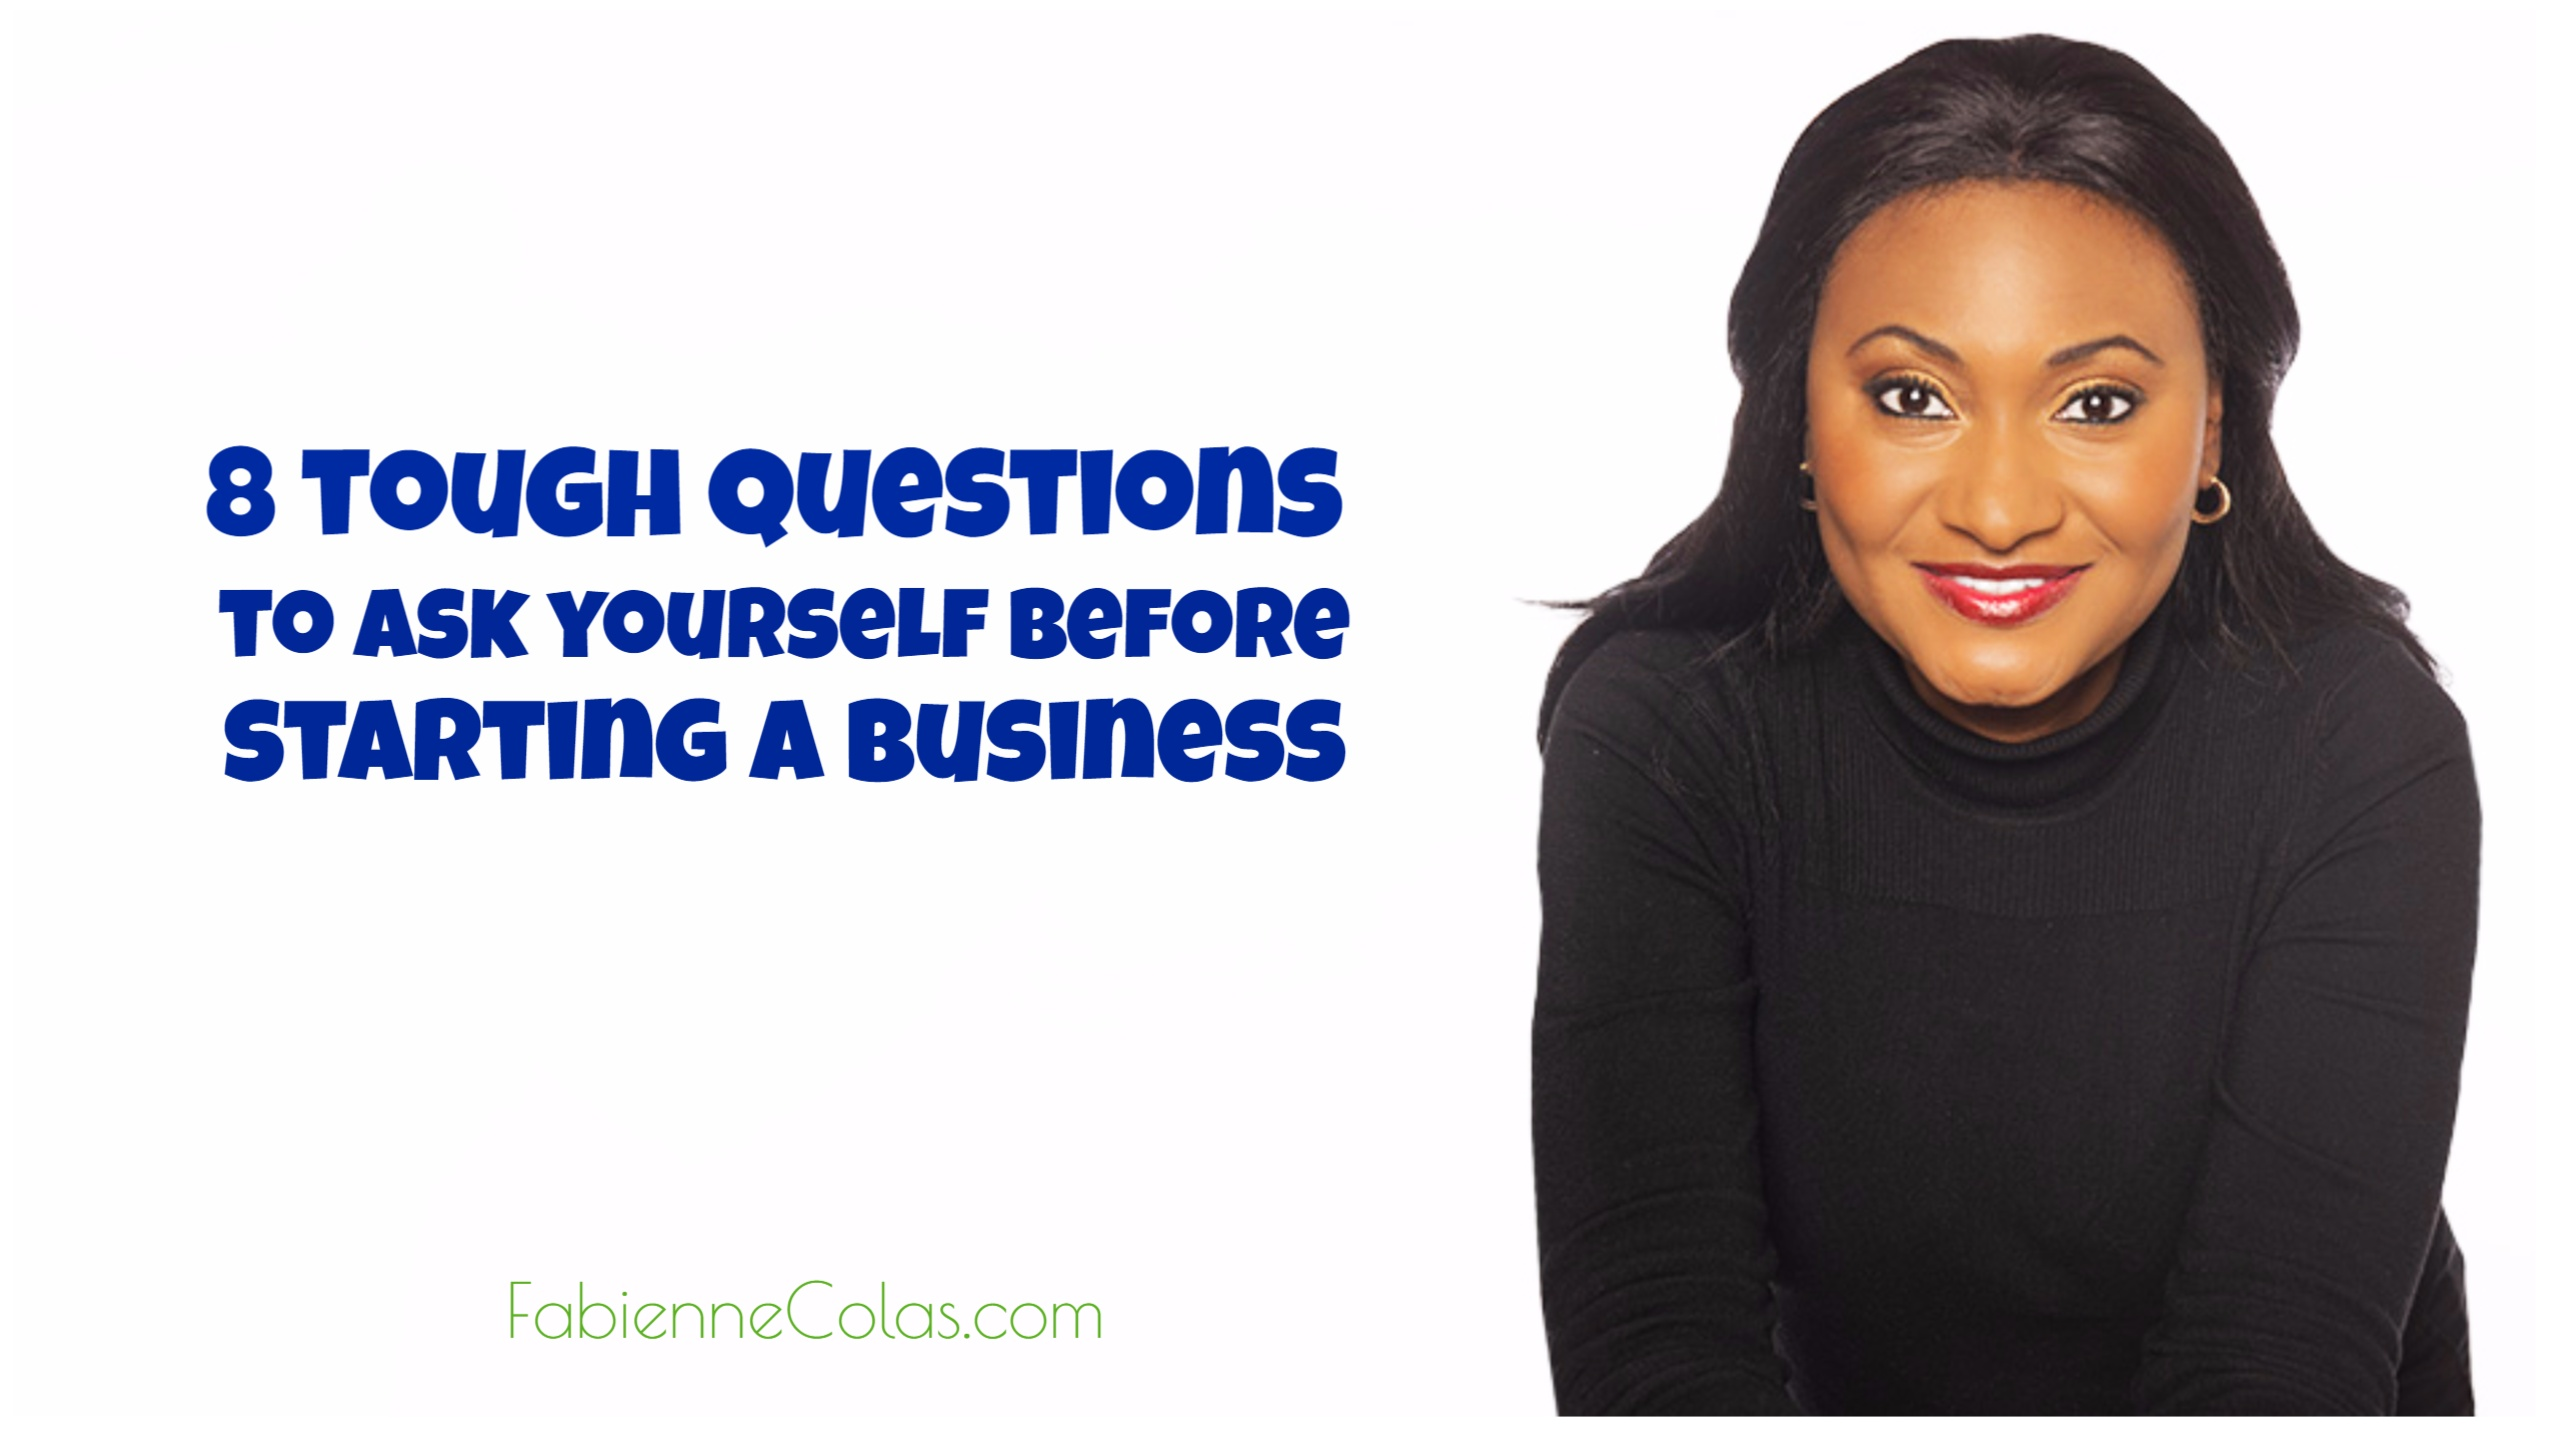 8 tough questions to ask yourself before starting a business